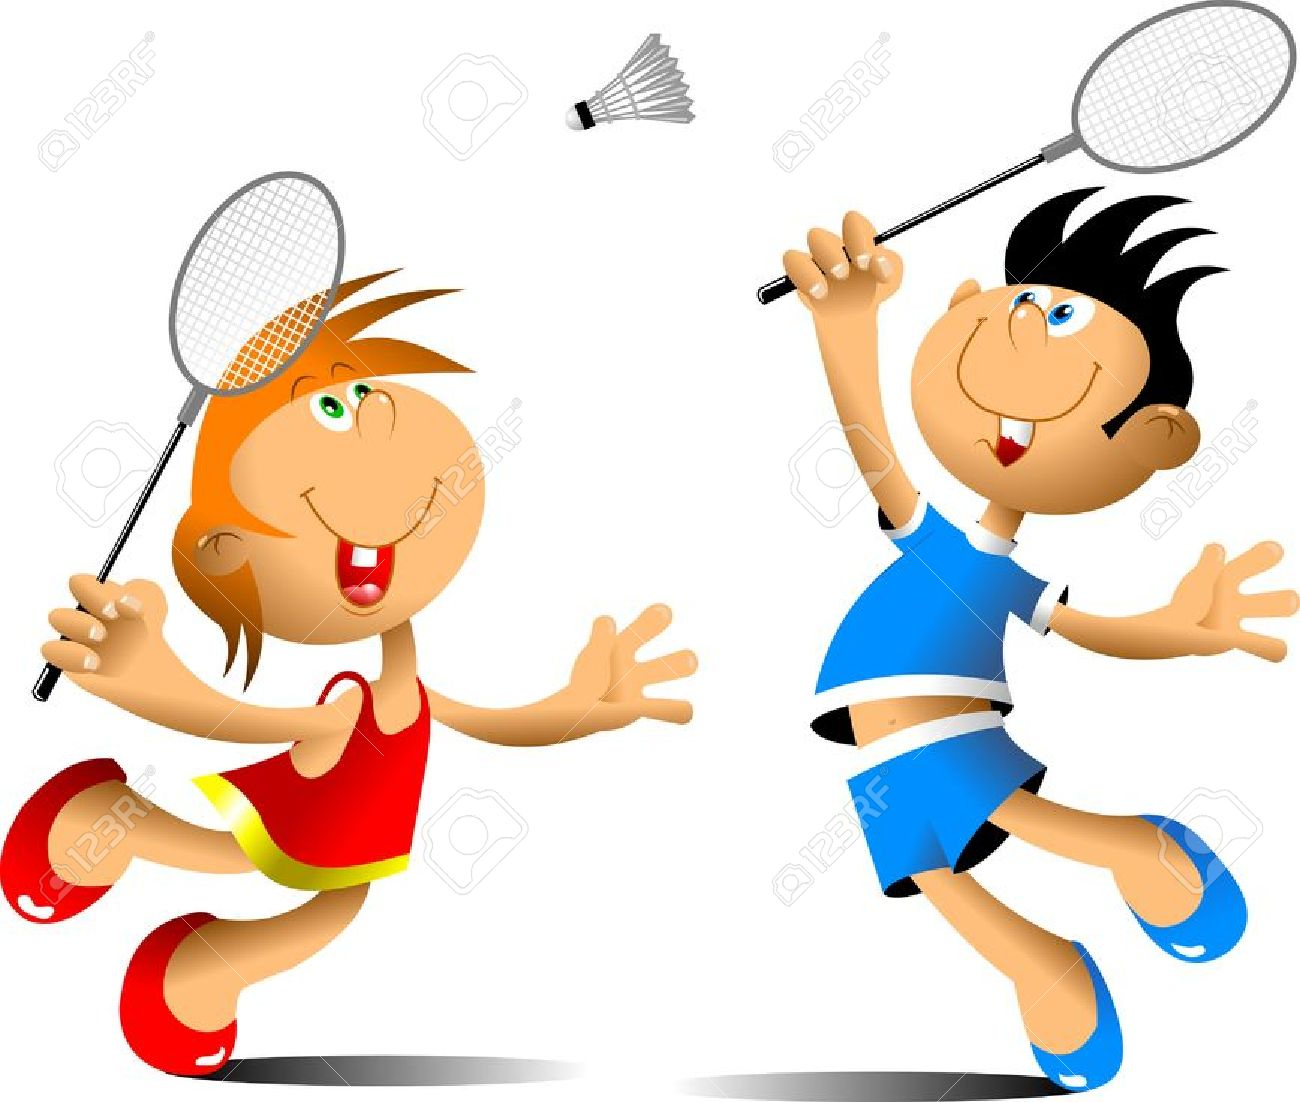 Playing badminton clipart 1 » Clipart Station.